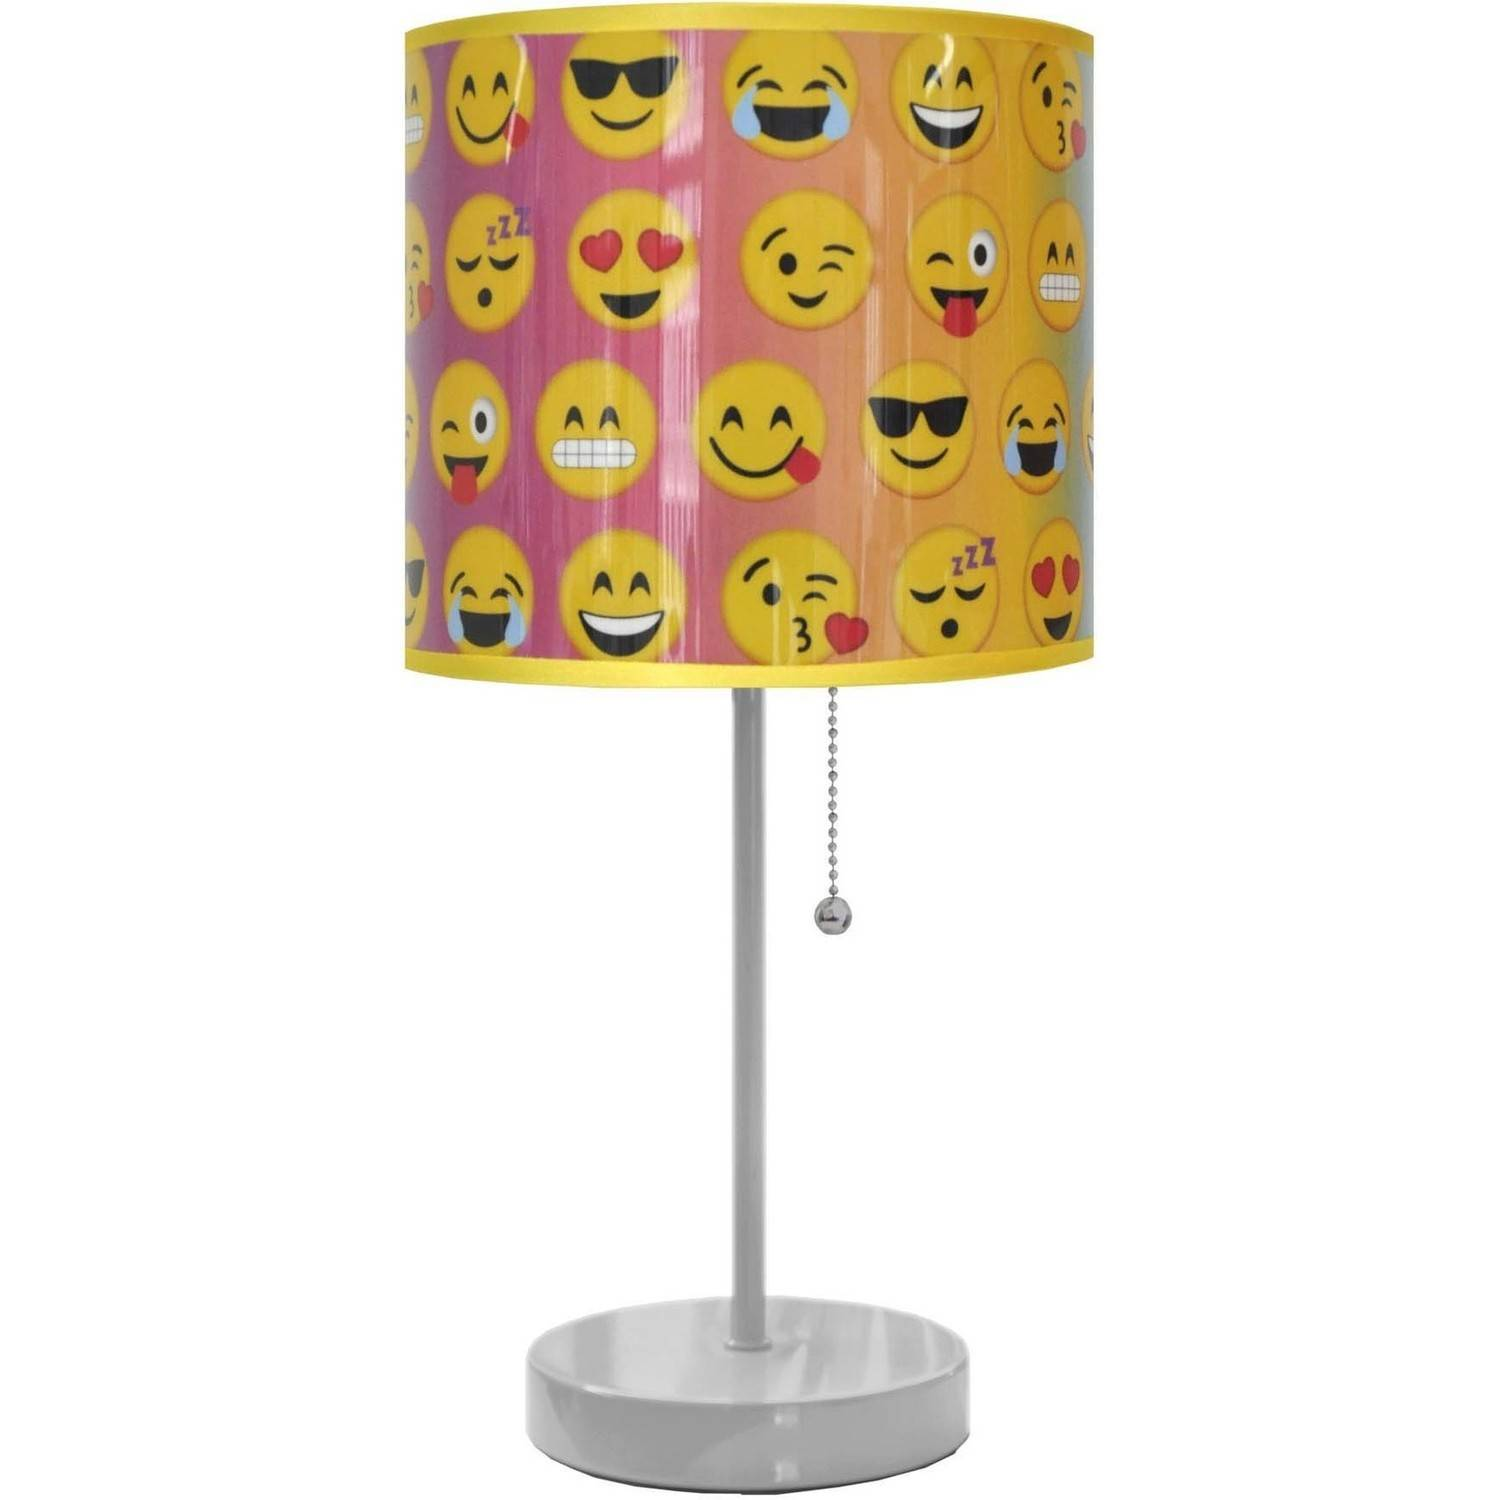 Emoji Table Lamp Plastic Study Shade Kids Bedroom Lighting